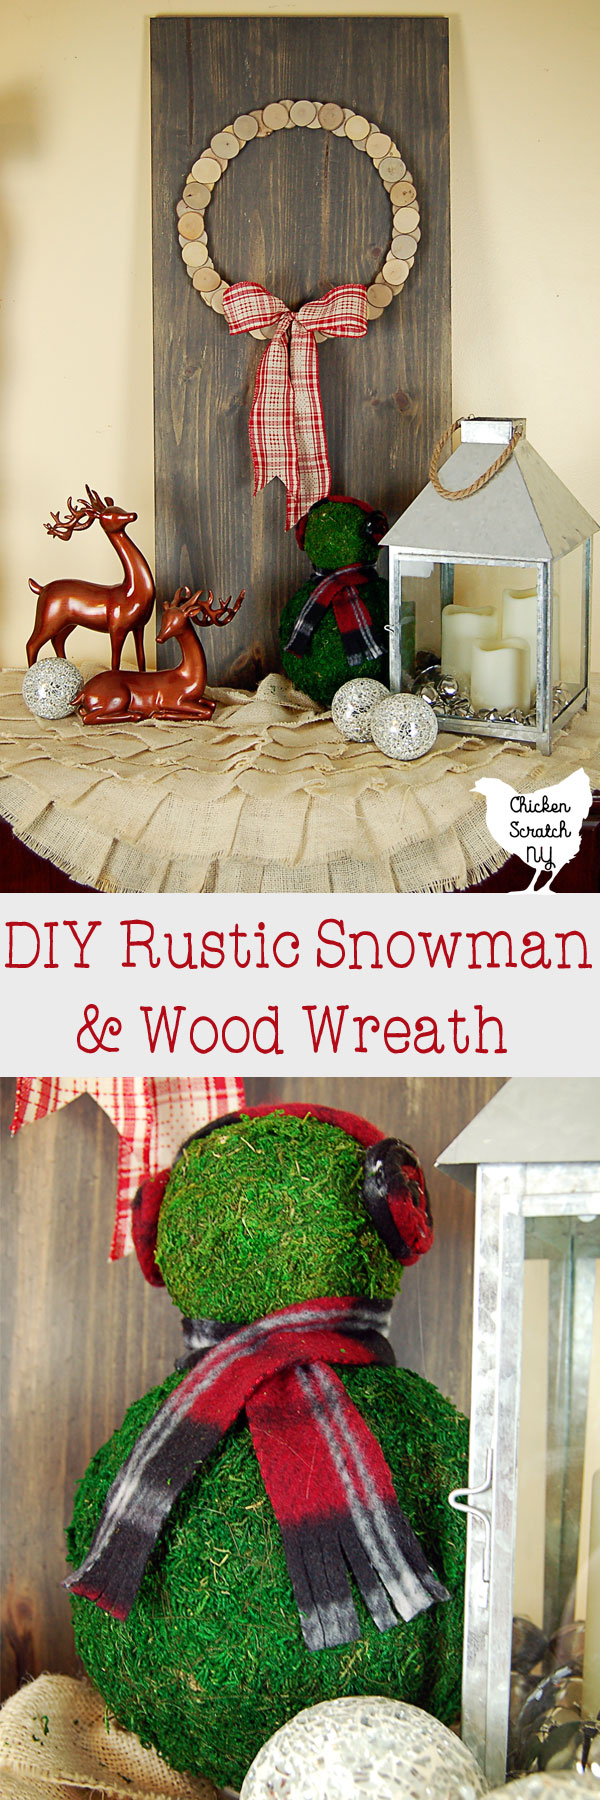 Decorate with a DIY rustic snowman and wood slice wreath for a simple display to carry you from Christmas though the winter season #rusticChristmas #ChristmasDIY #wreath Sponsored by Oriental Trading Company